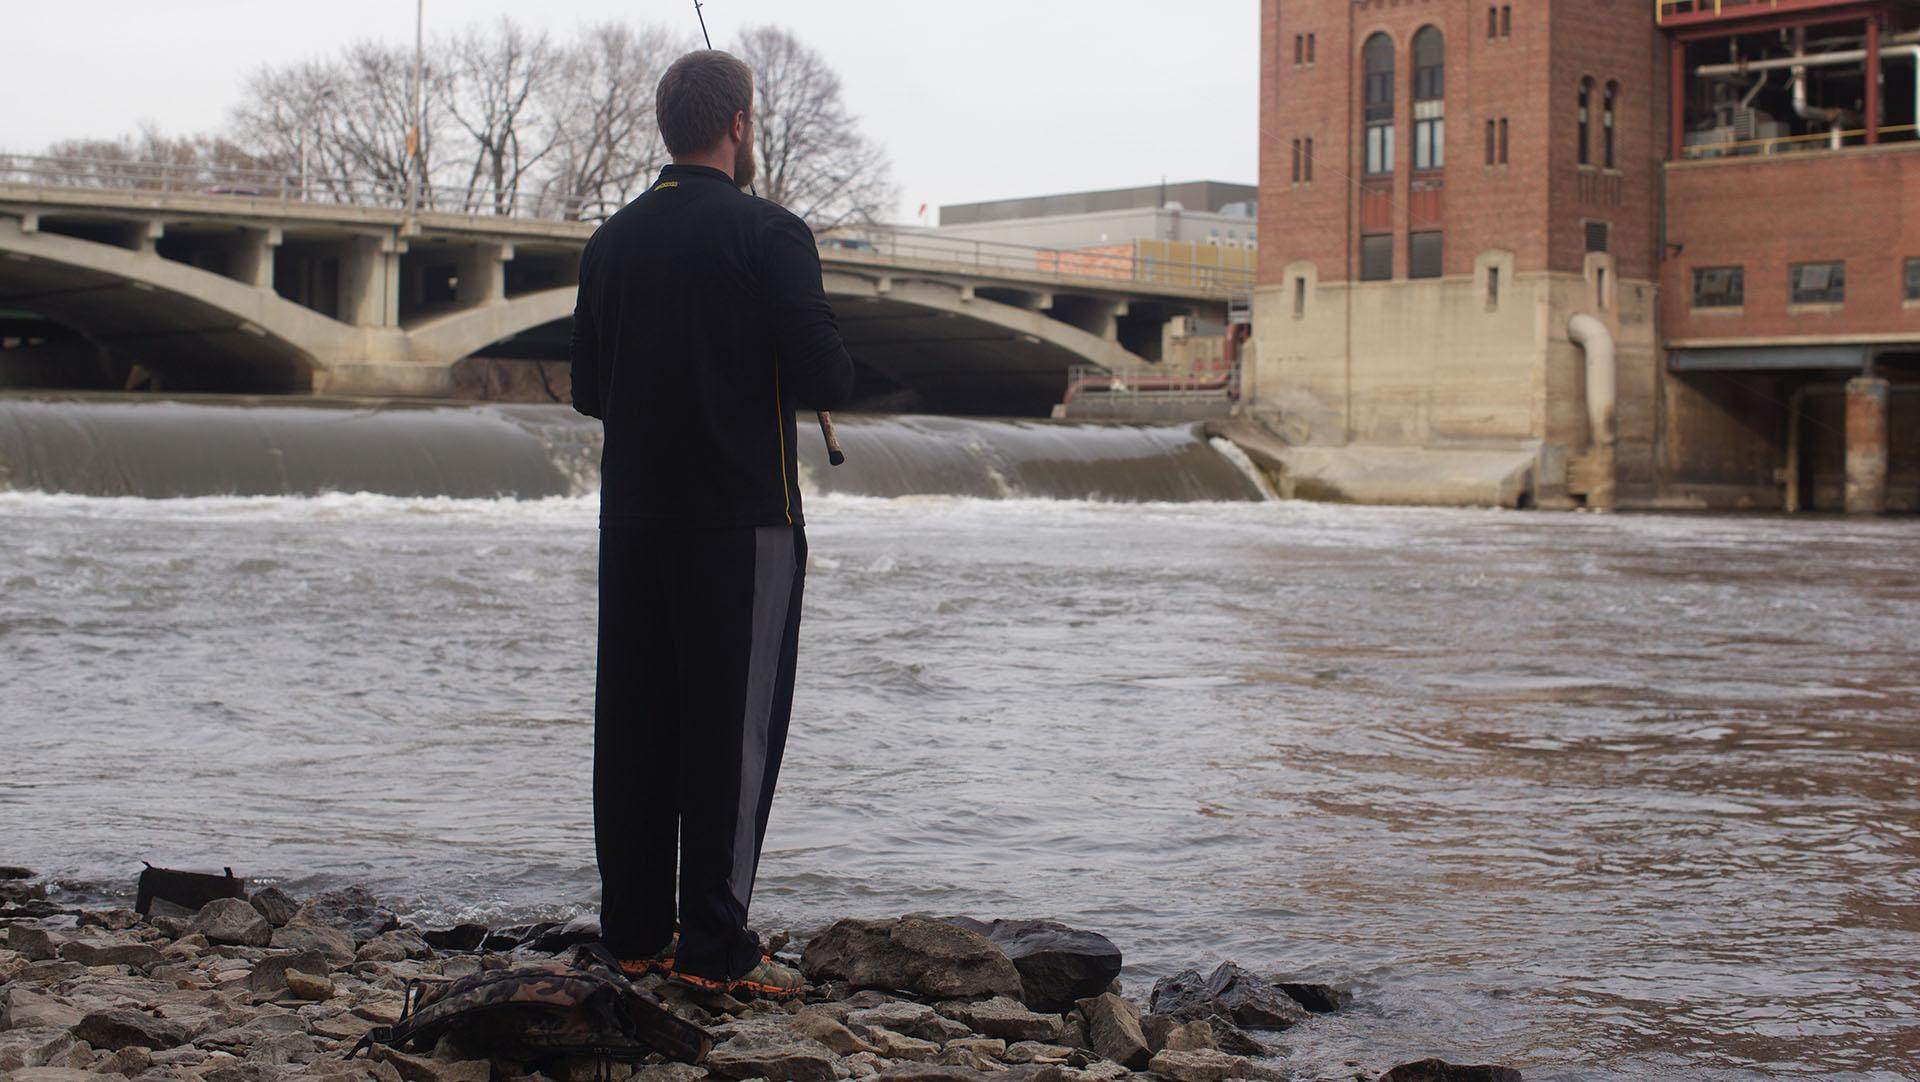 Andy DeCamp a freshman at The University of Iowa fishes at the base of the Iowa River dam on, Tuesday March 22, 2016. The first day of the spring season was Sunday March 20, the day before students returned from spring break. (The Daily Iowan/Jordan Gale)